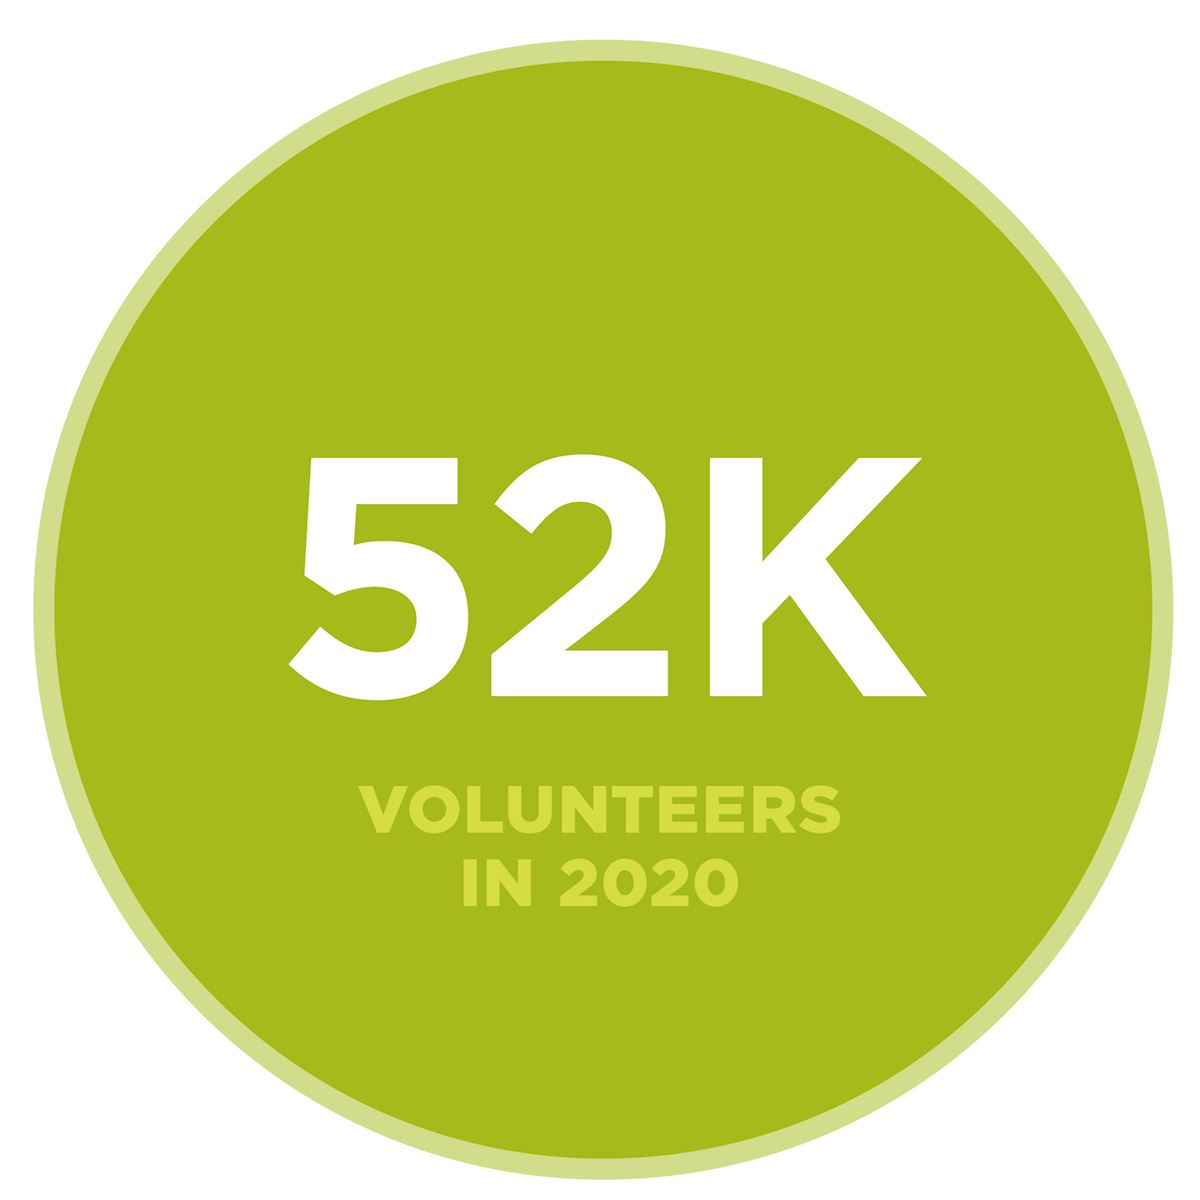 52,000 volunteers in 2020